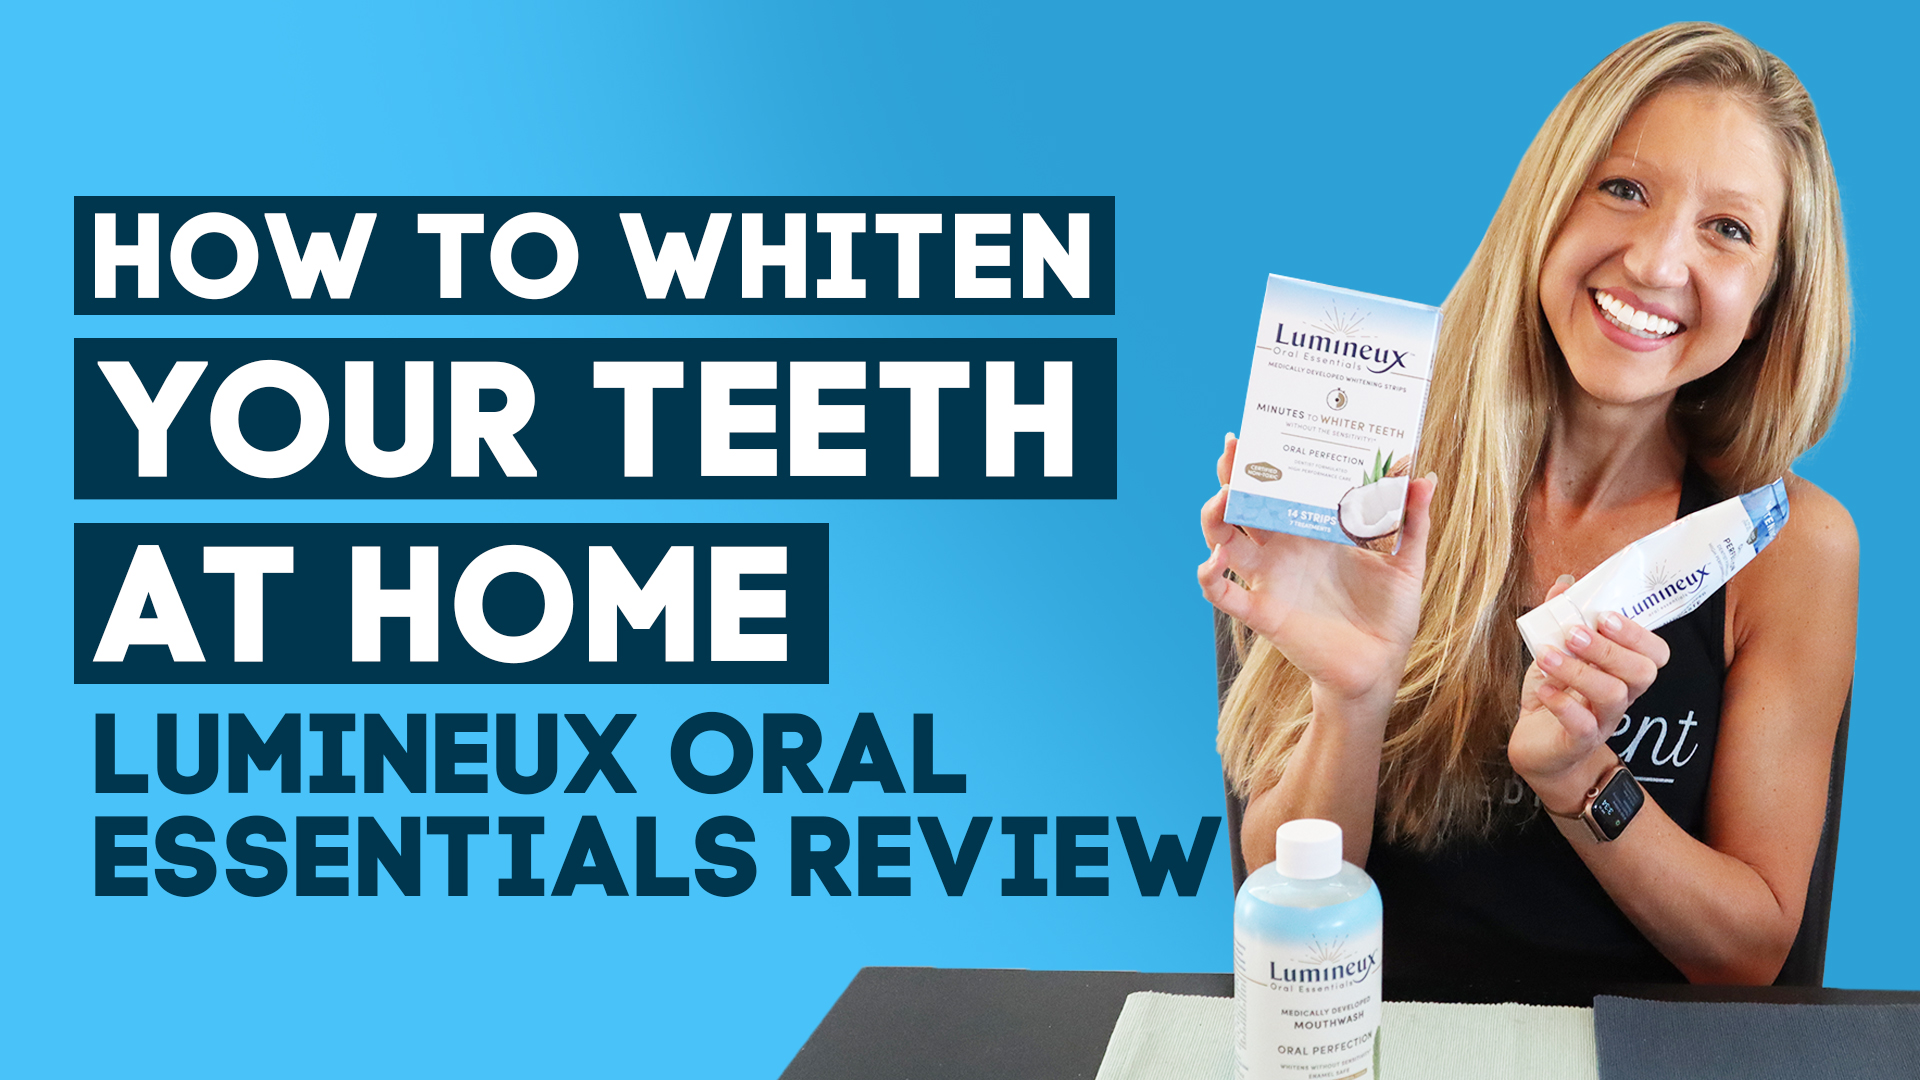 How To Whiten Teeth At Home Naturally Fast Lumineux Oral